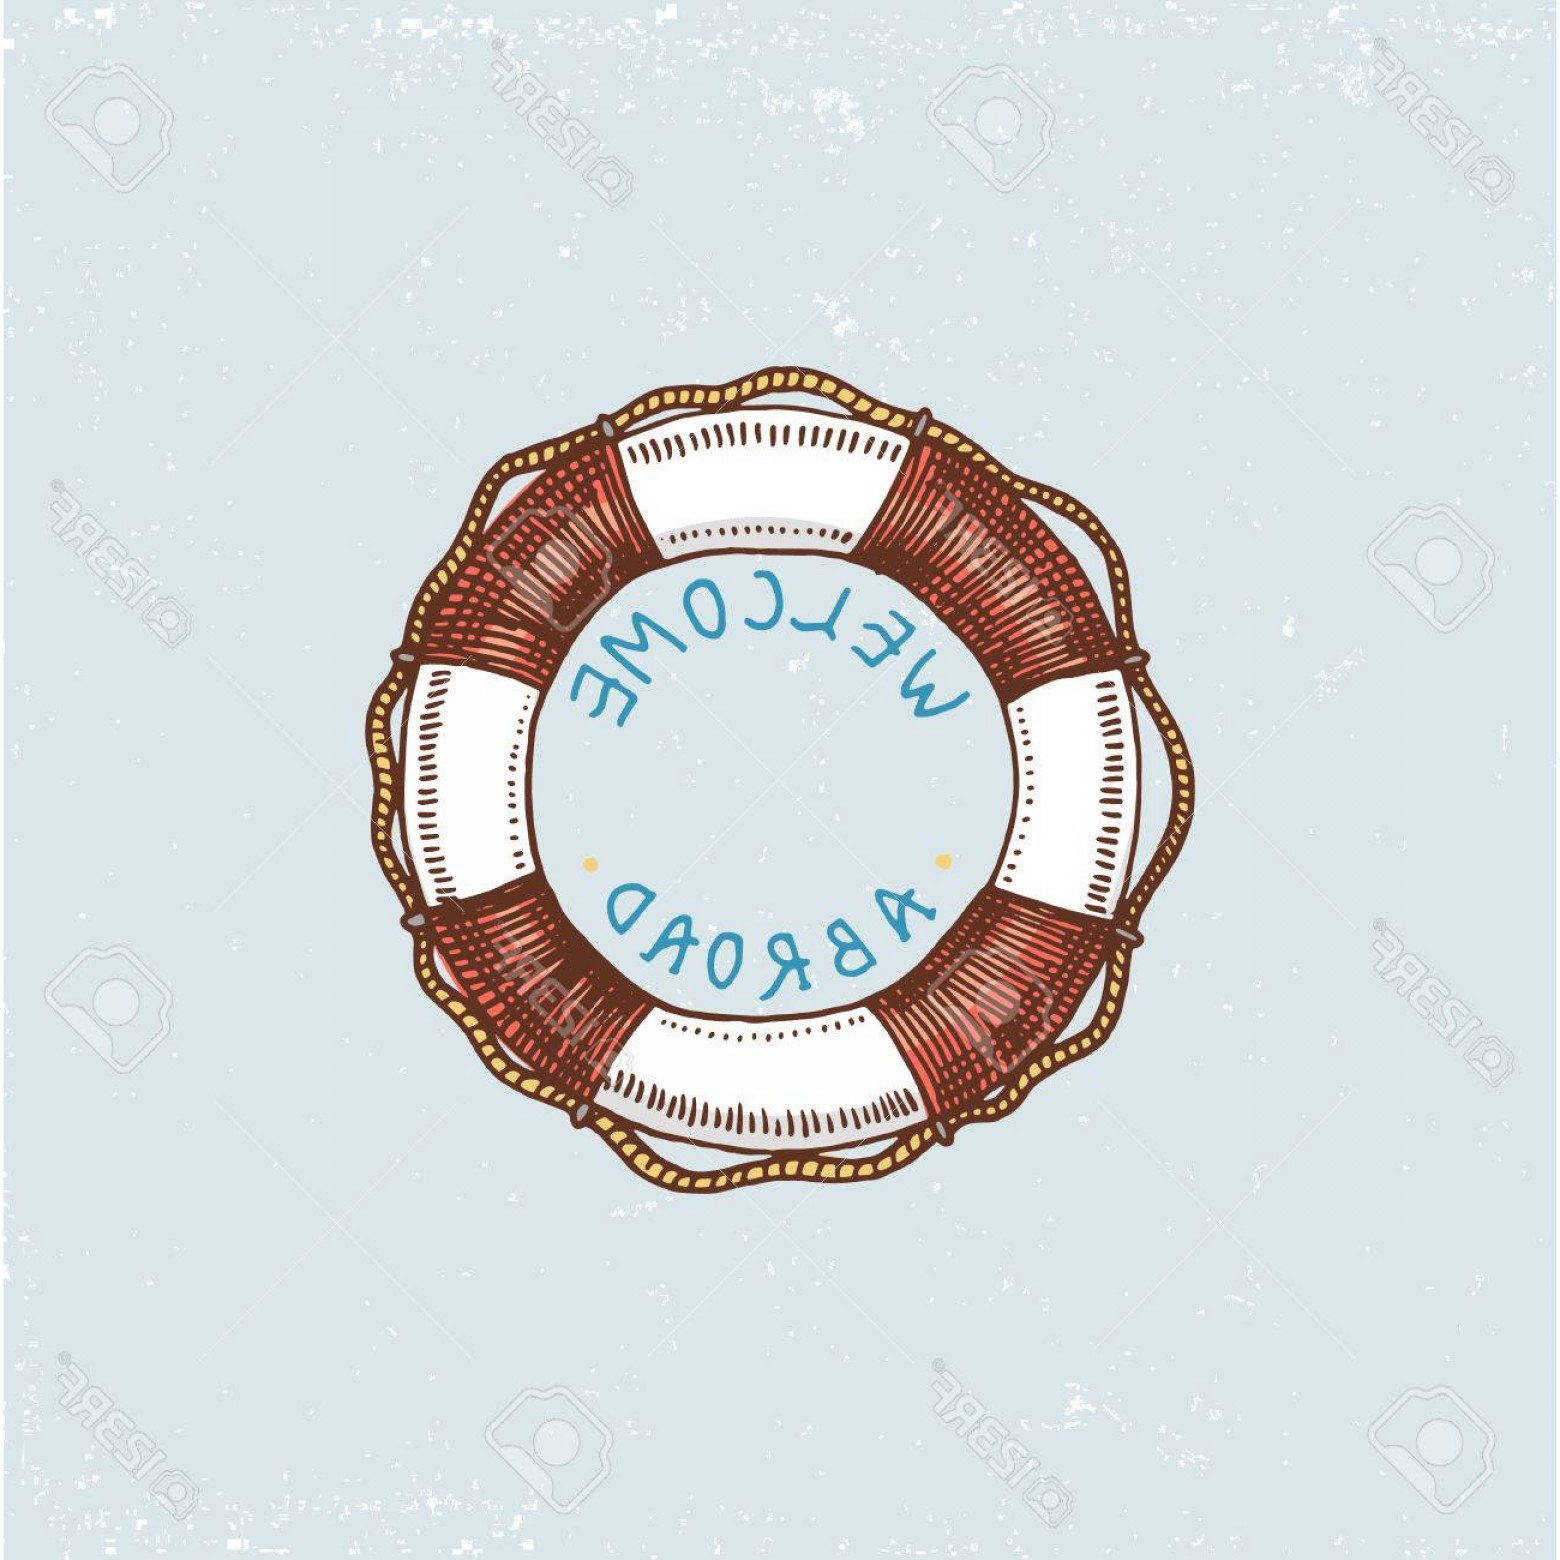 Old Lifesaver Stripe Vectors: Photostock Vector Set Of Engraved Vintage Hand Drawn Old Labels Or Badges For A Life Ring